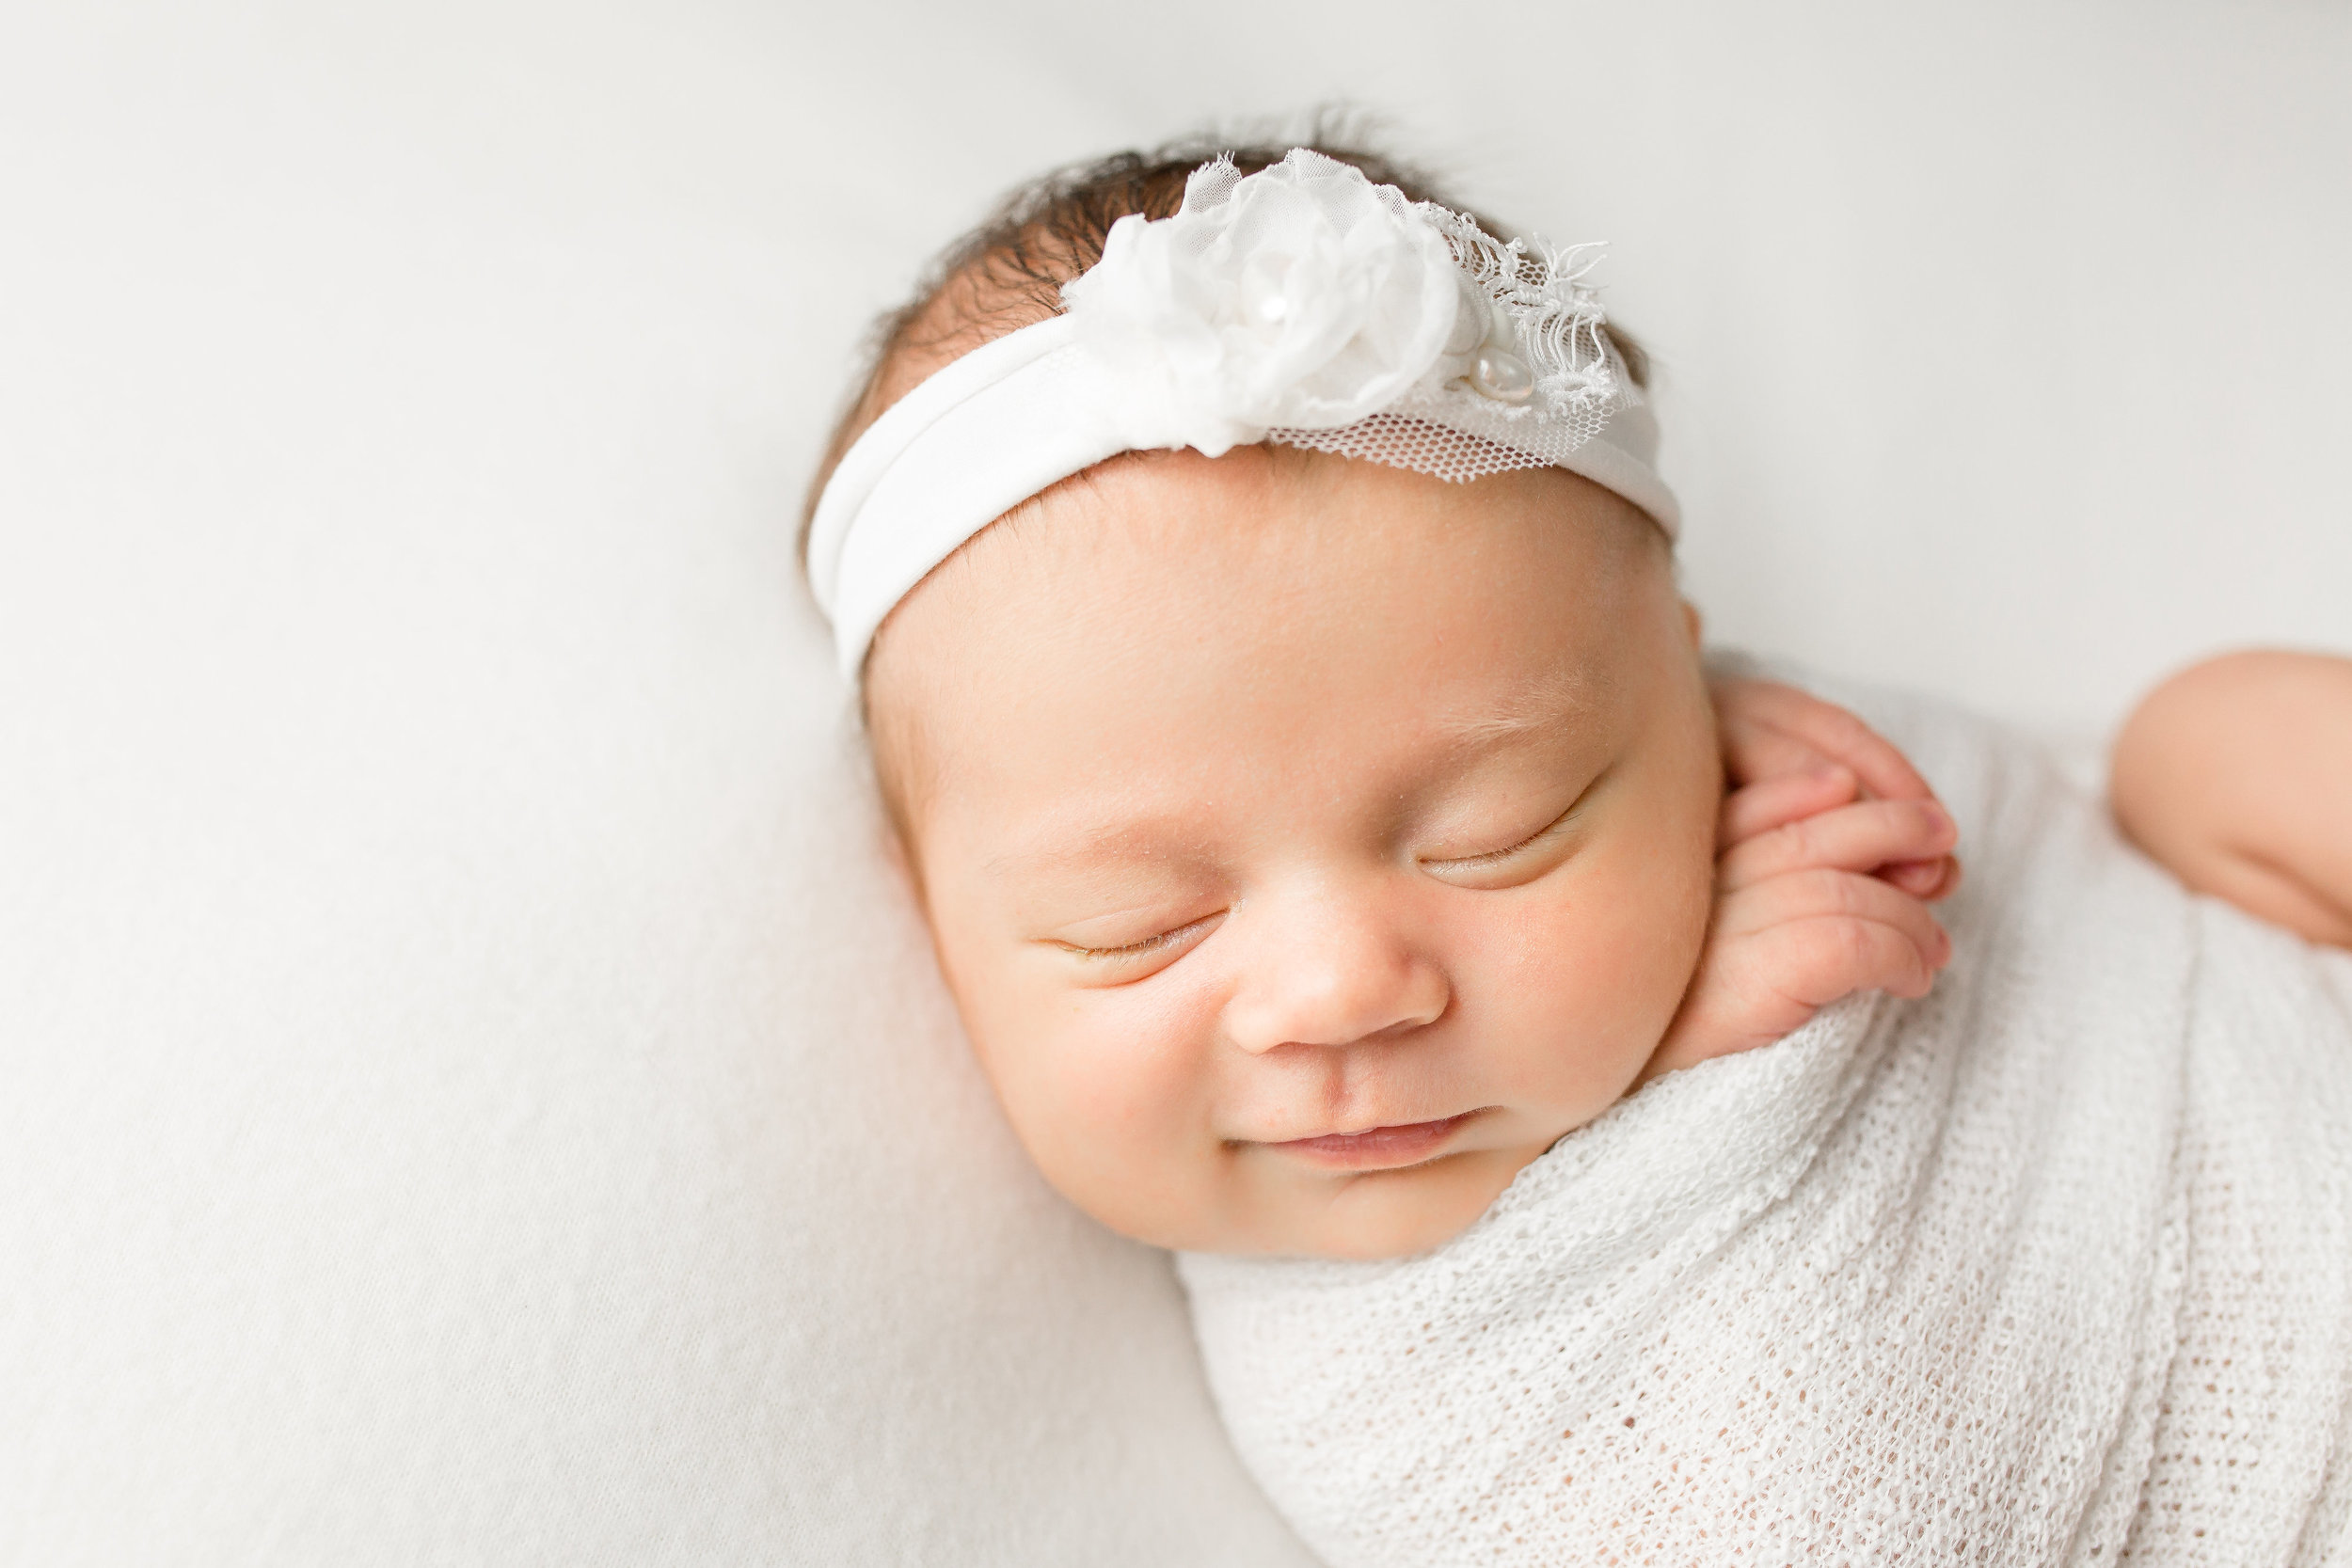 Newborn-smiles-during-photo-session-sarah-cropper-photography